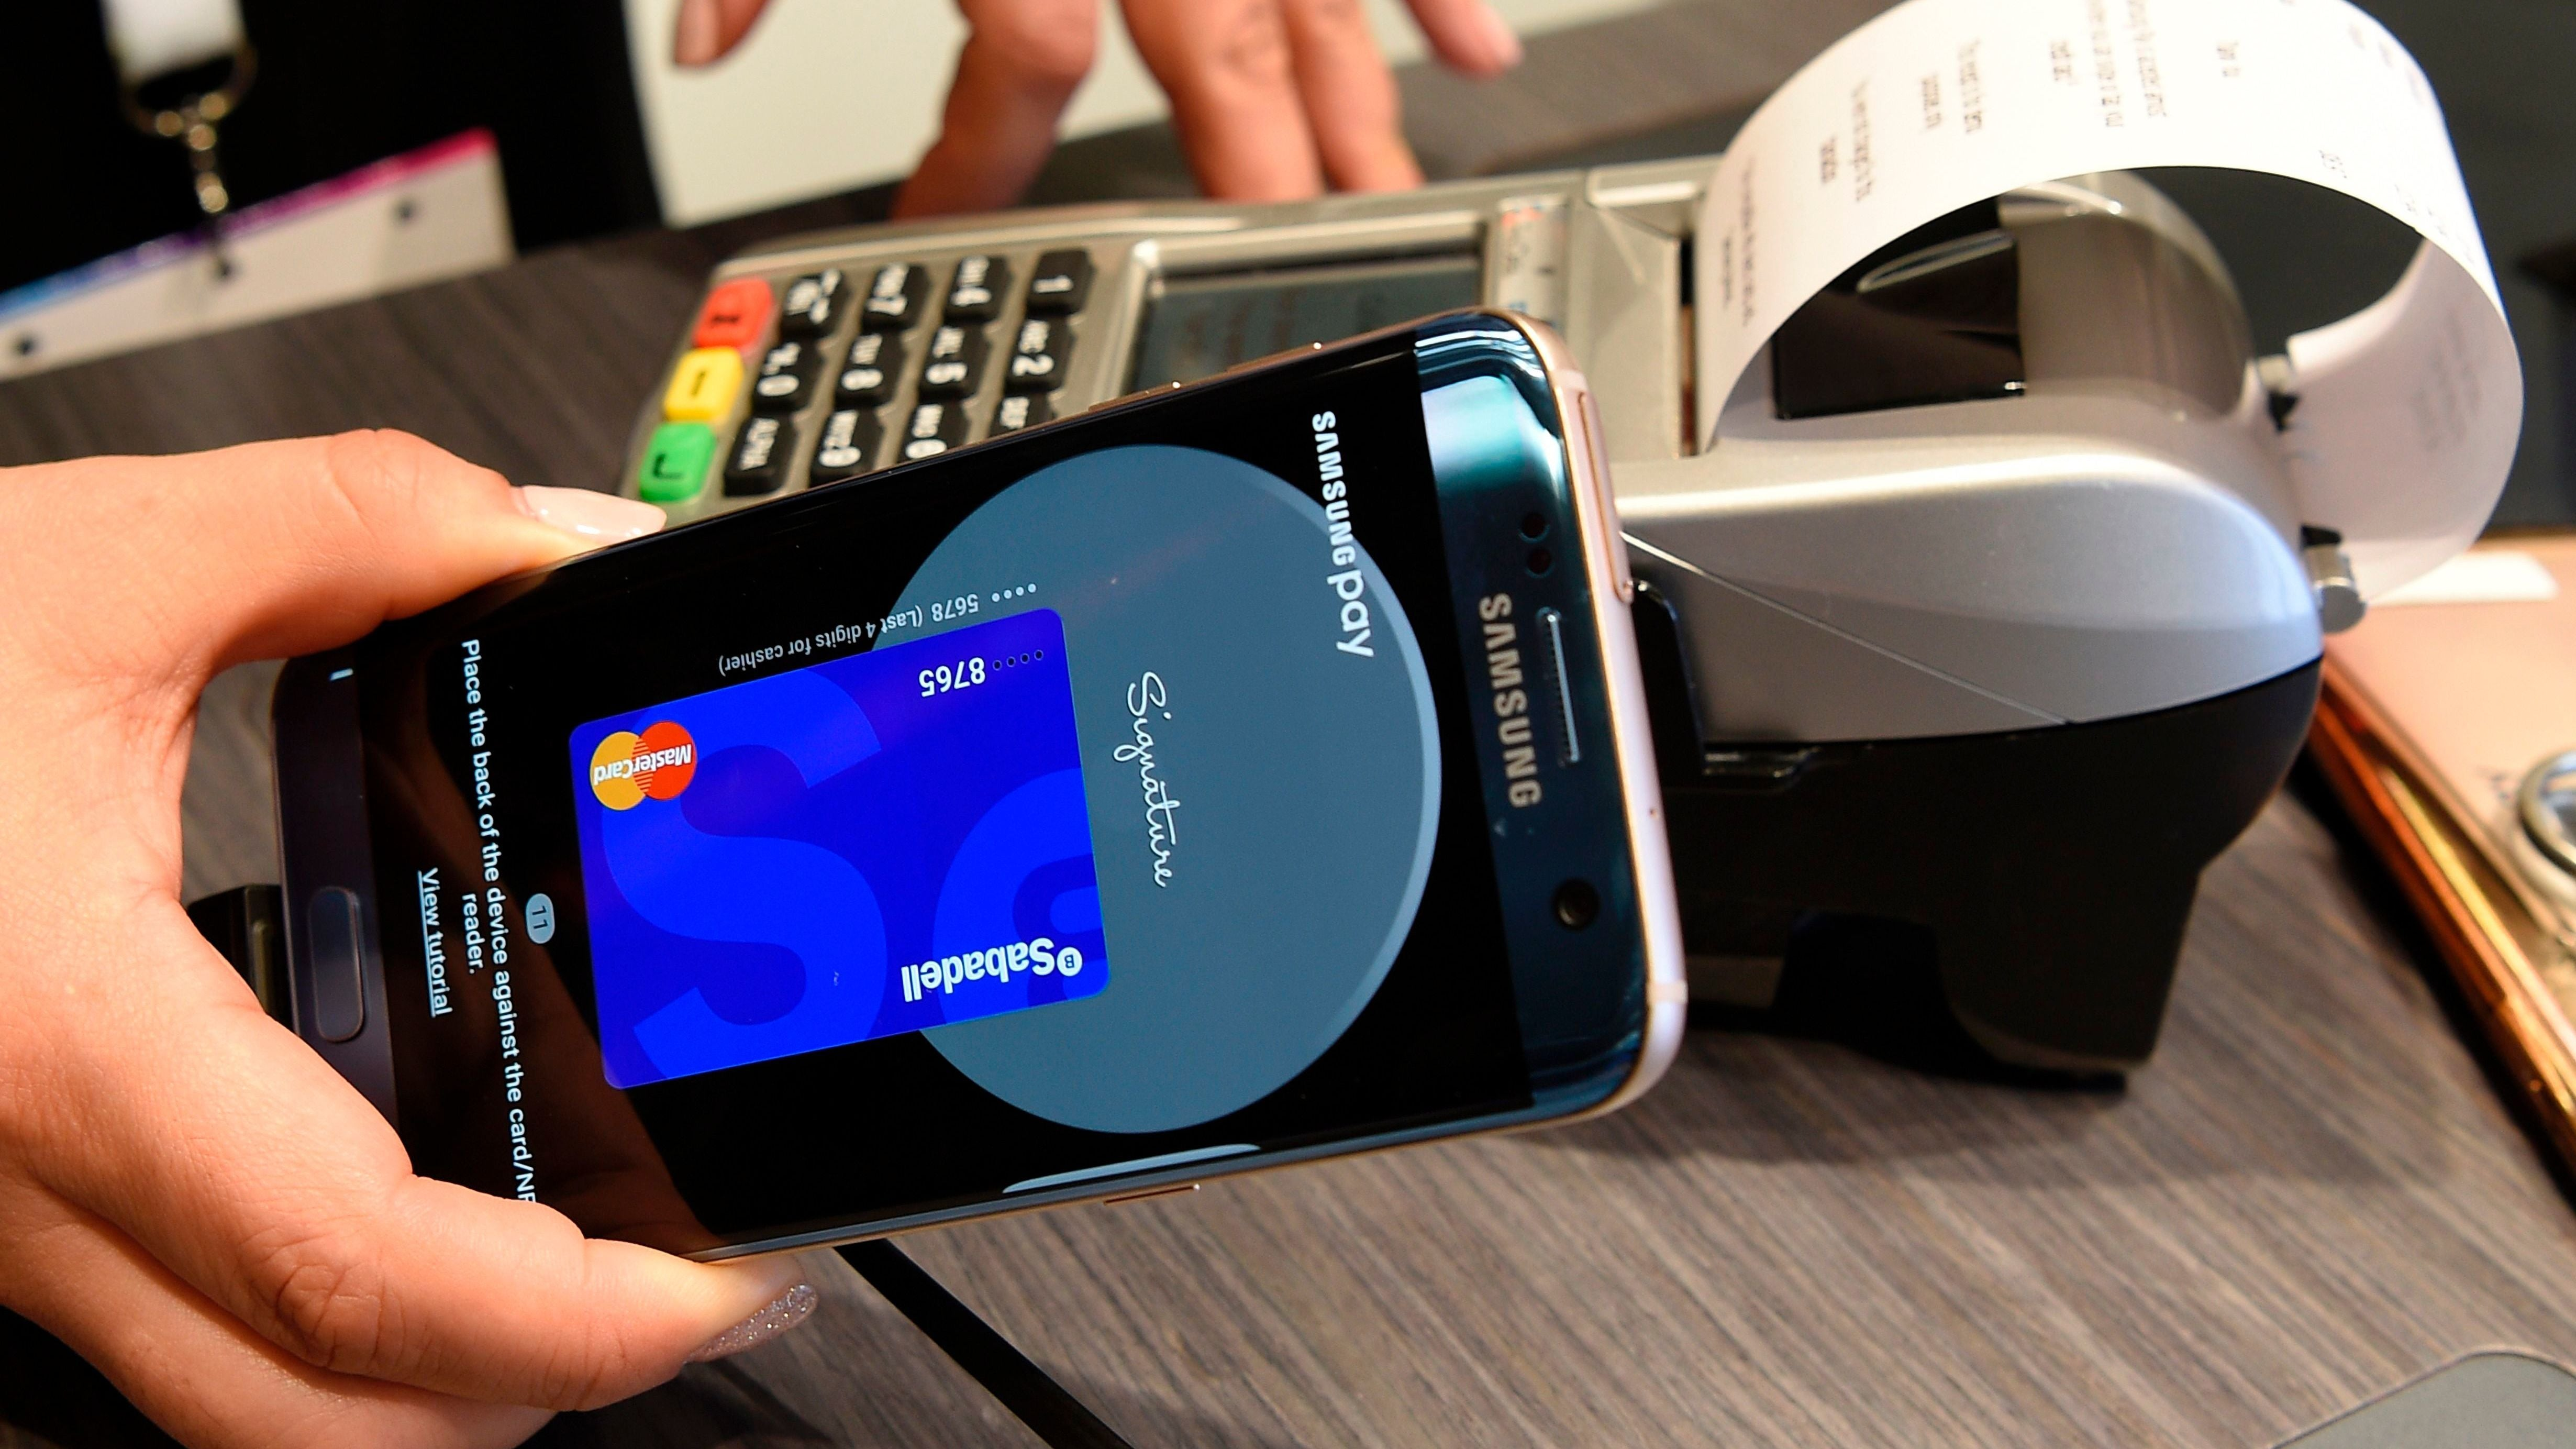 Samsung Hops On The Finance Train, Announces New Debit Card